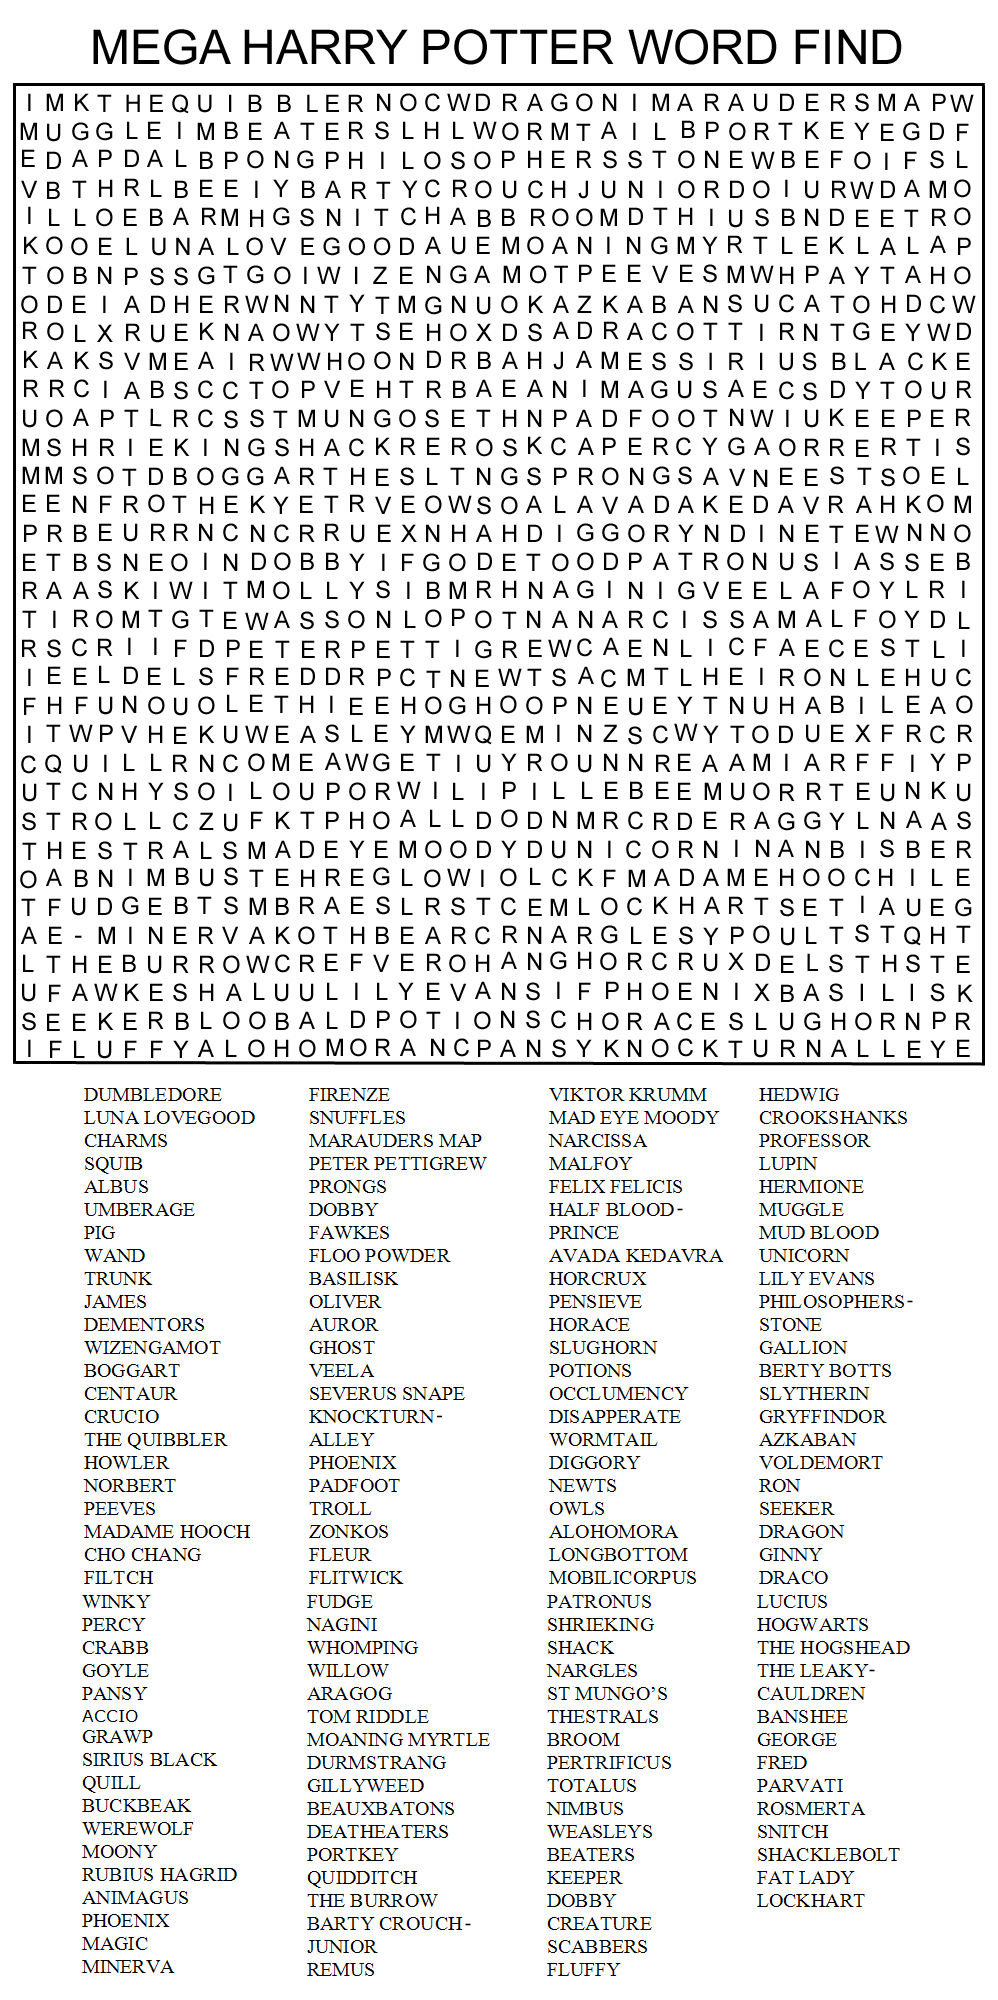 MEGA HARRY POTTER WORD FIND by Kinky-chichi on DeviantArt